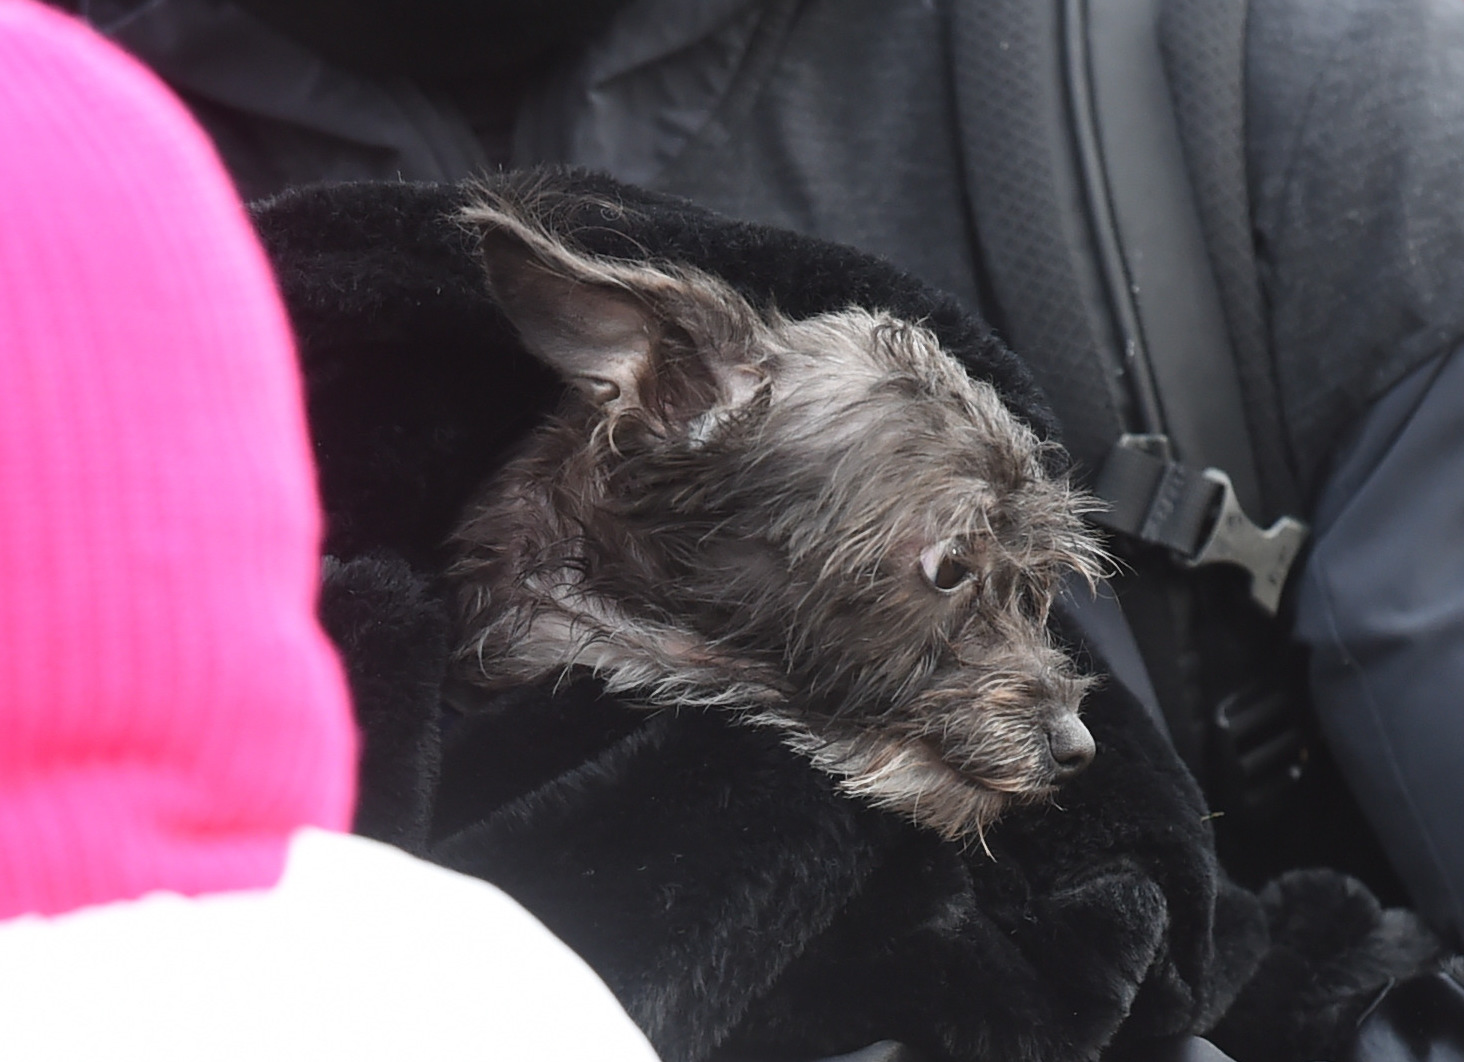 The FDNY rescued Celine, a dog who was cowering inside the bathroom of the home.